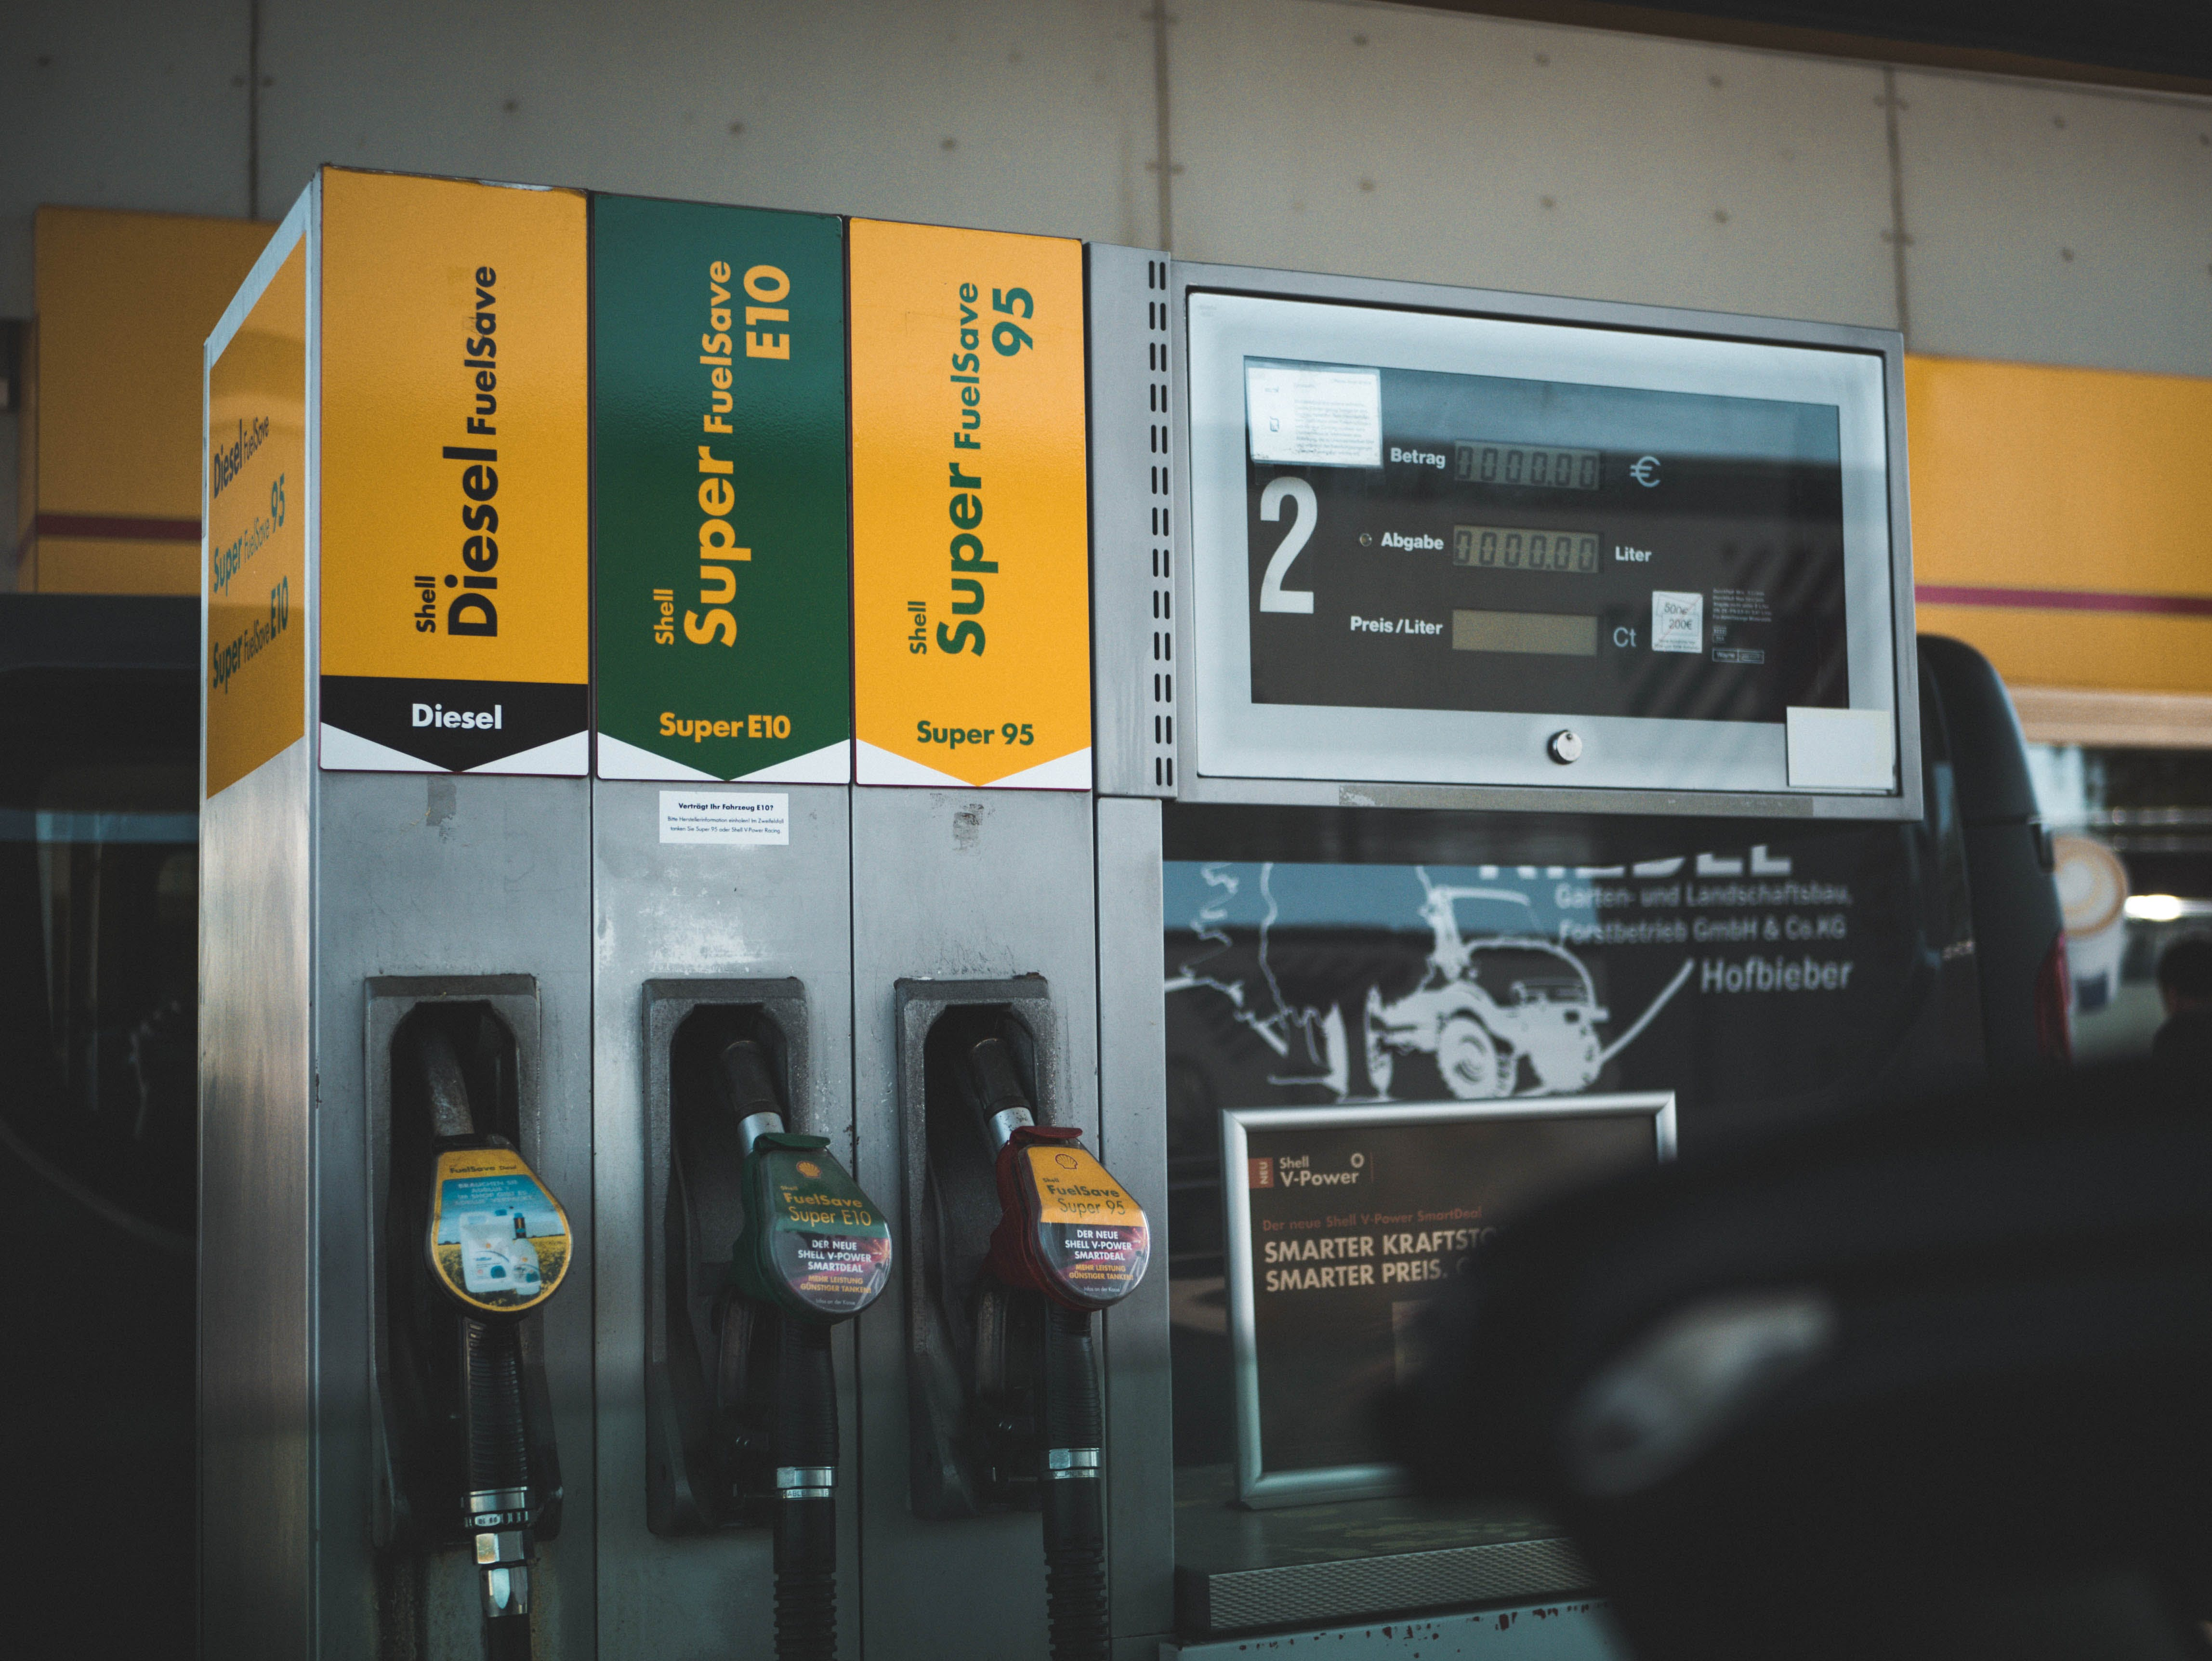 Photo of Gasoline Dispenser in Station